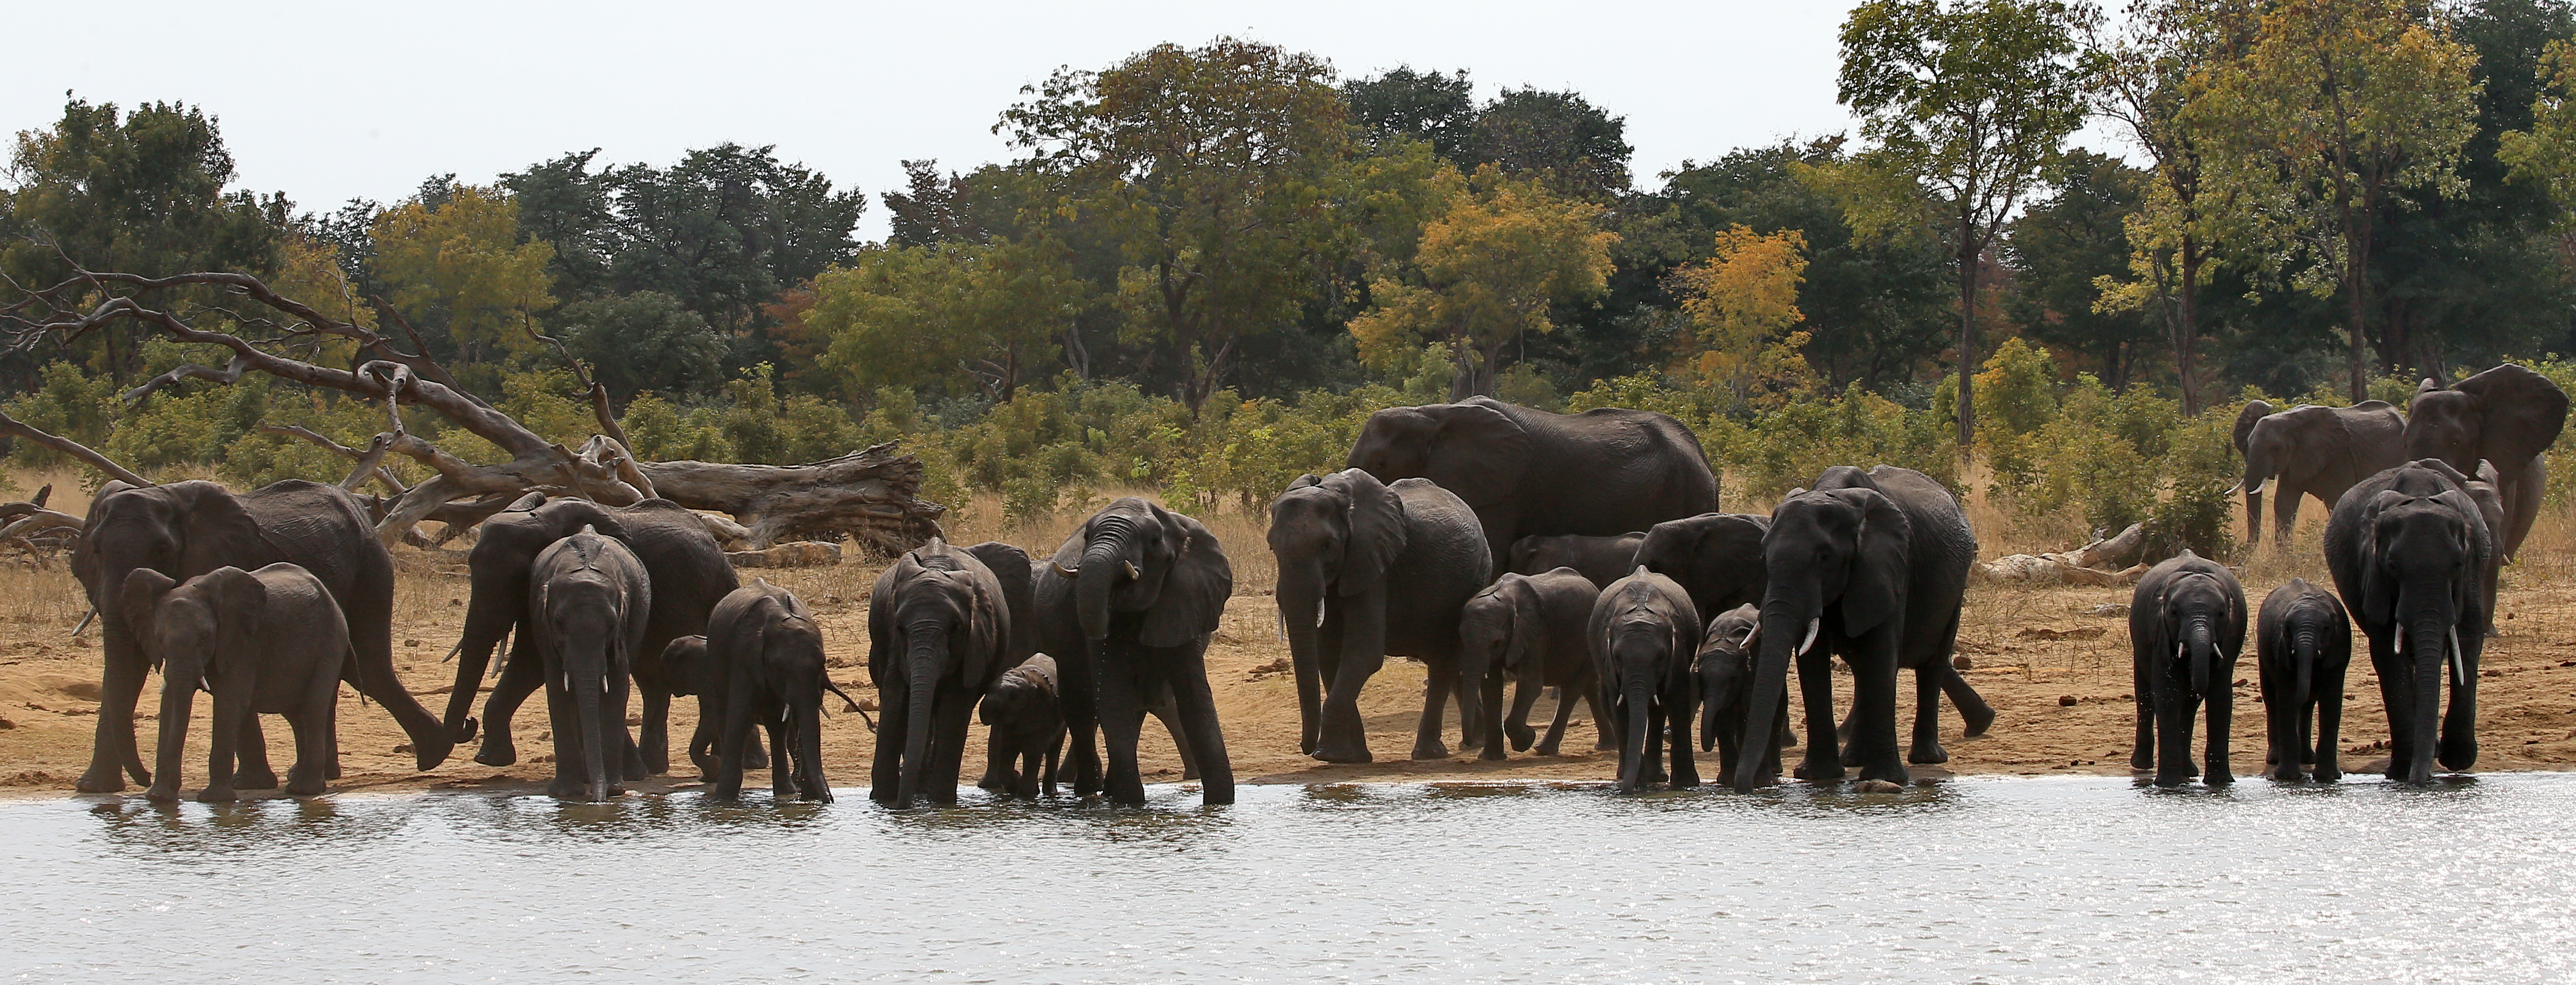 faqs proposed import of wild elephants from swaziland by u s zoos